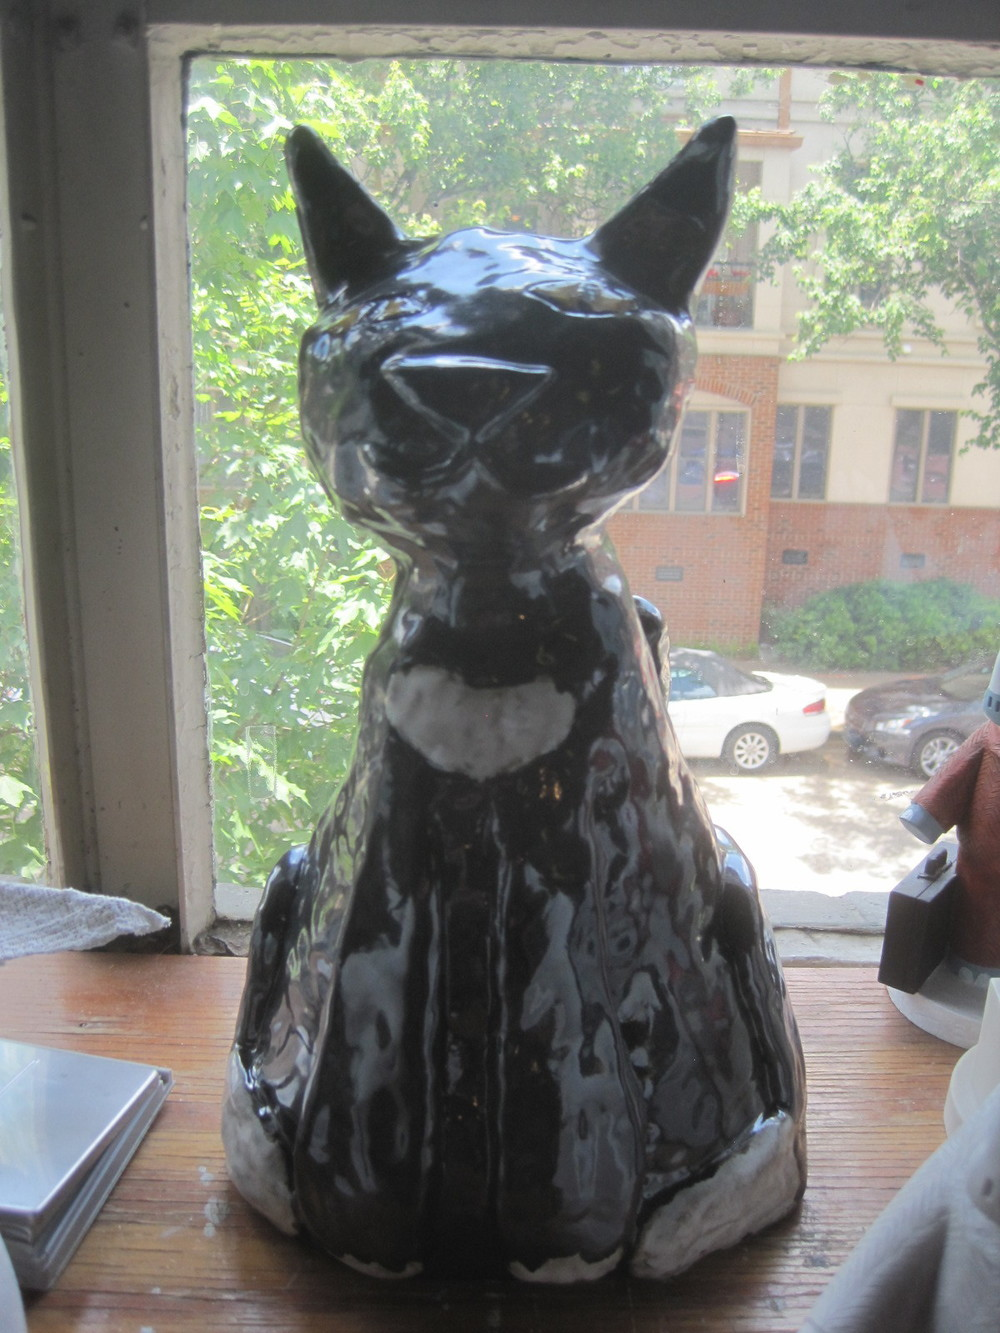 This cat, Louie, is my most recent piece. He is a commissioned sculpture made for the outdoors. He is meant as a memorial piece to a couple who lost their beloved pet.